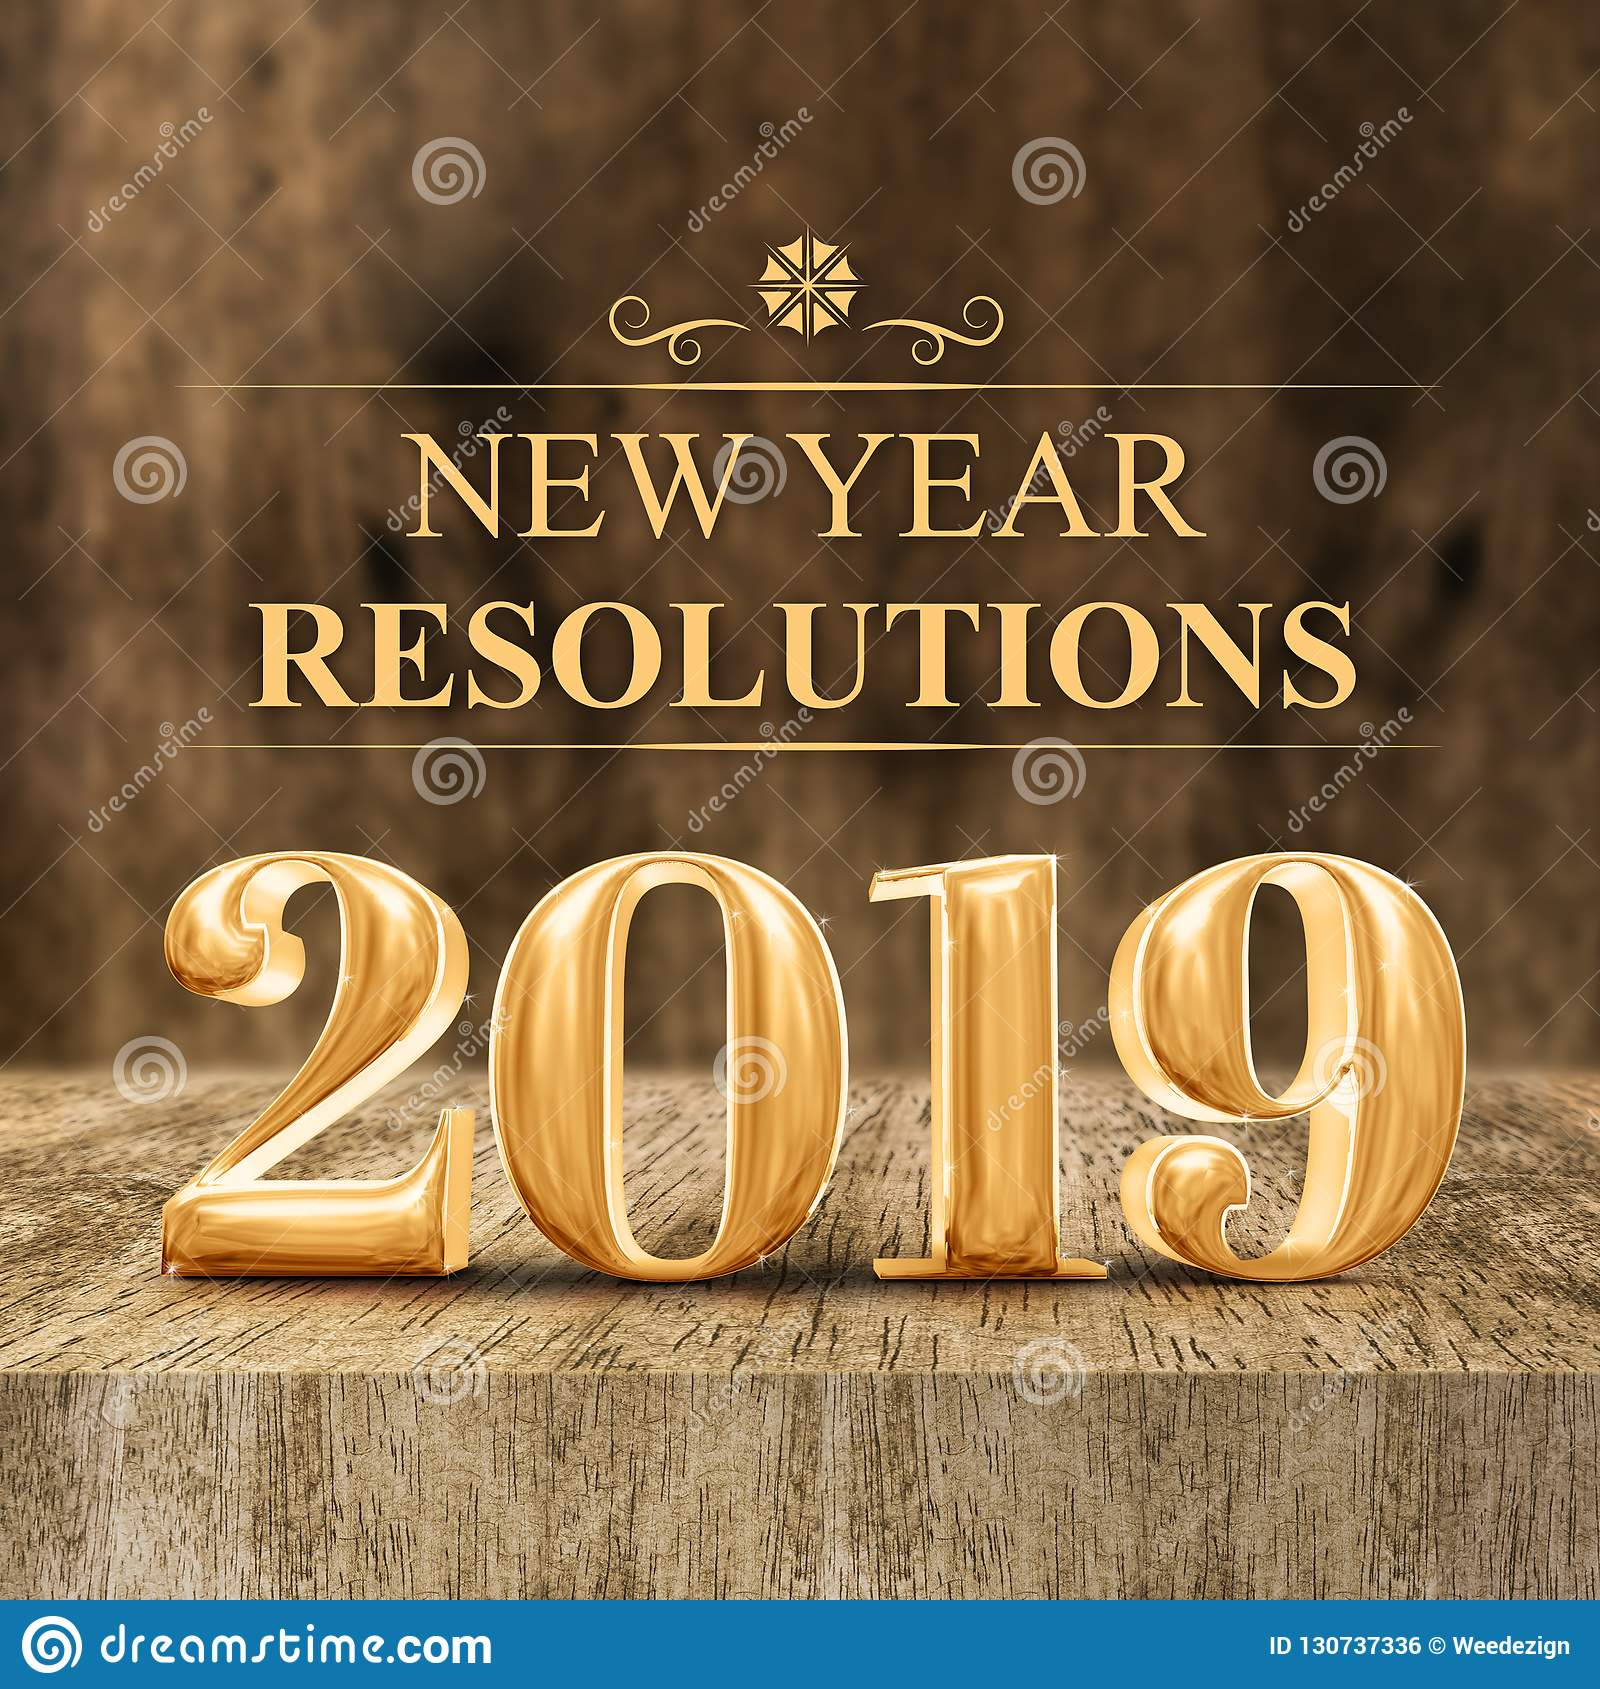 2019 New Years Resolutions Gold Shiny 2019 New Year Resolutions 3d Rendering At Wooden Bl